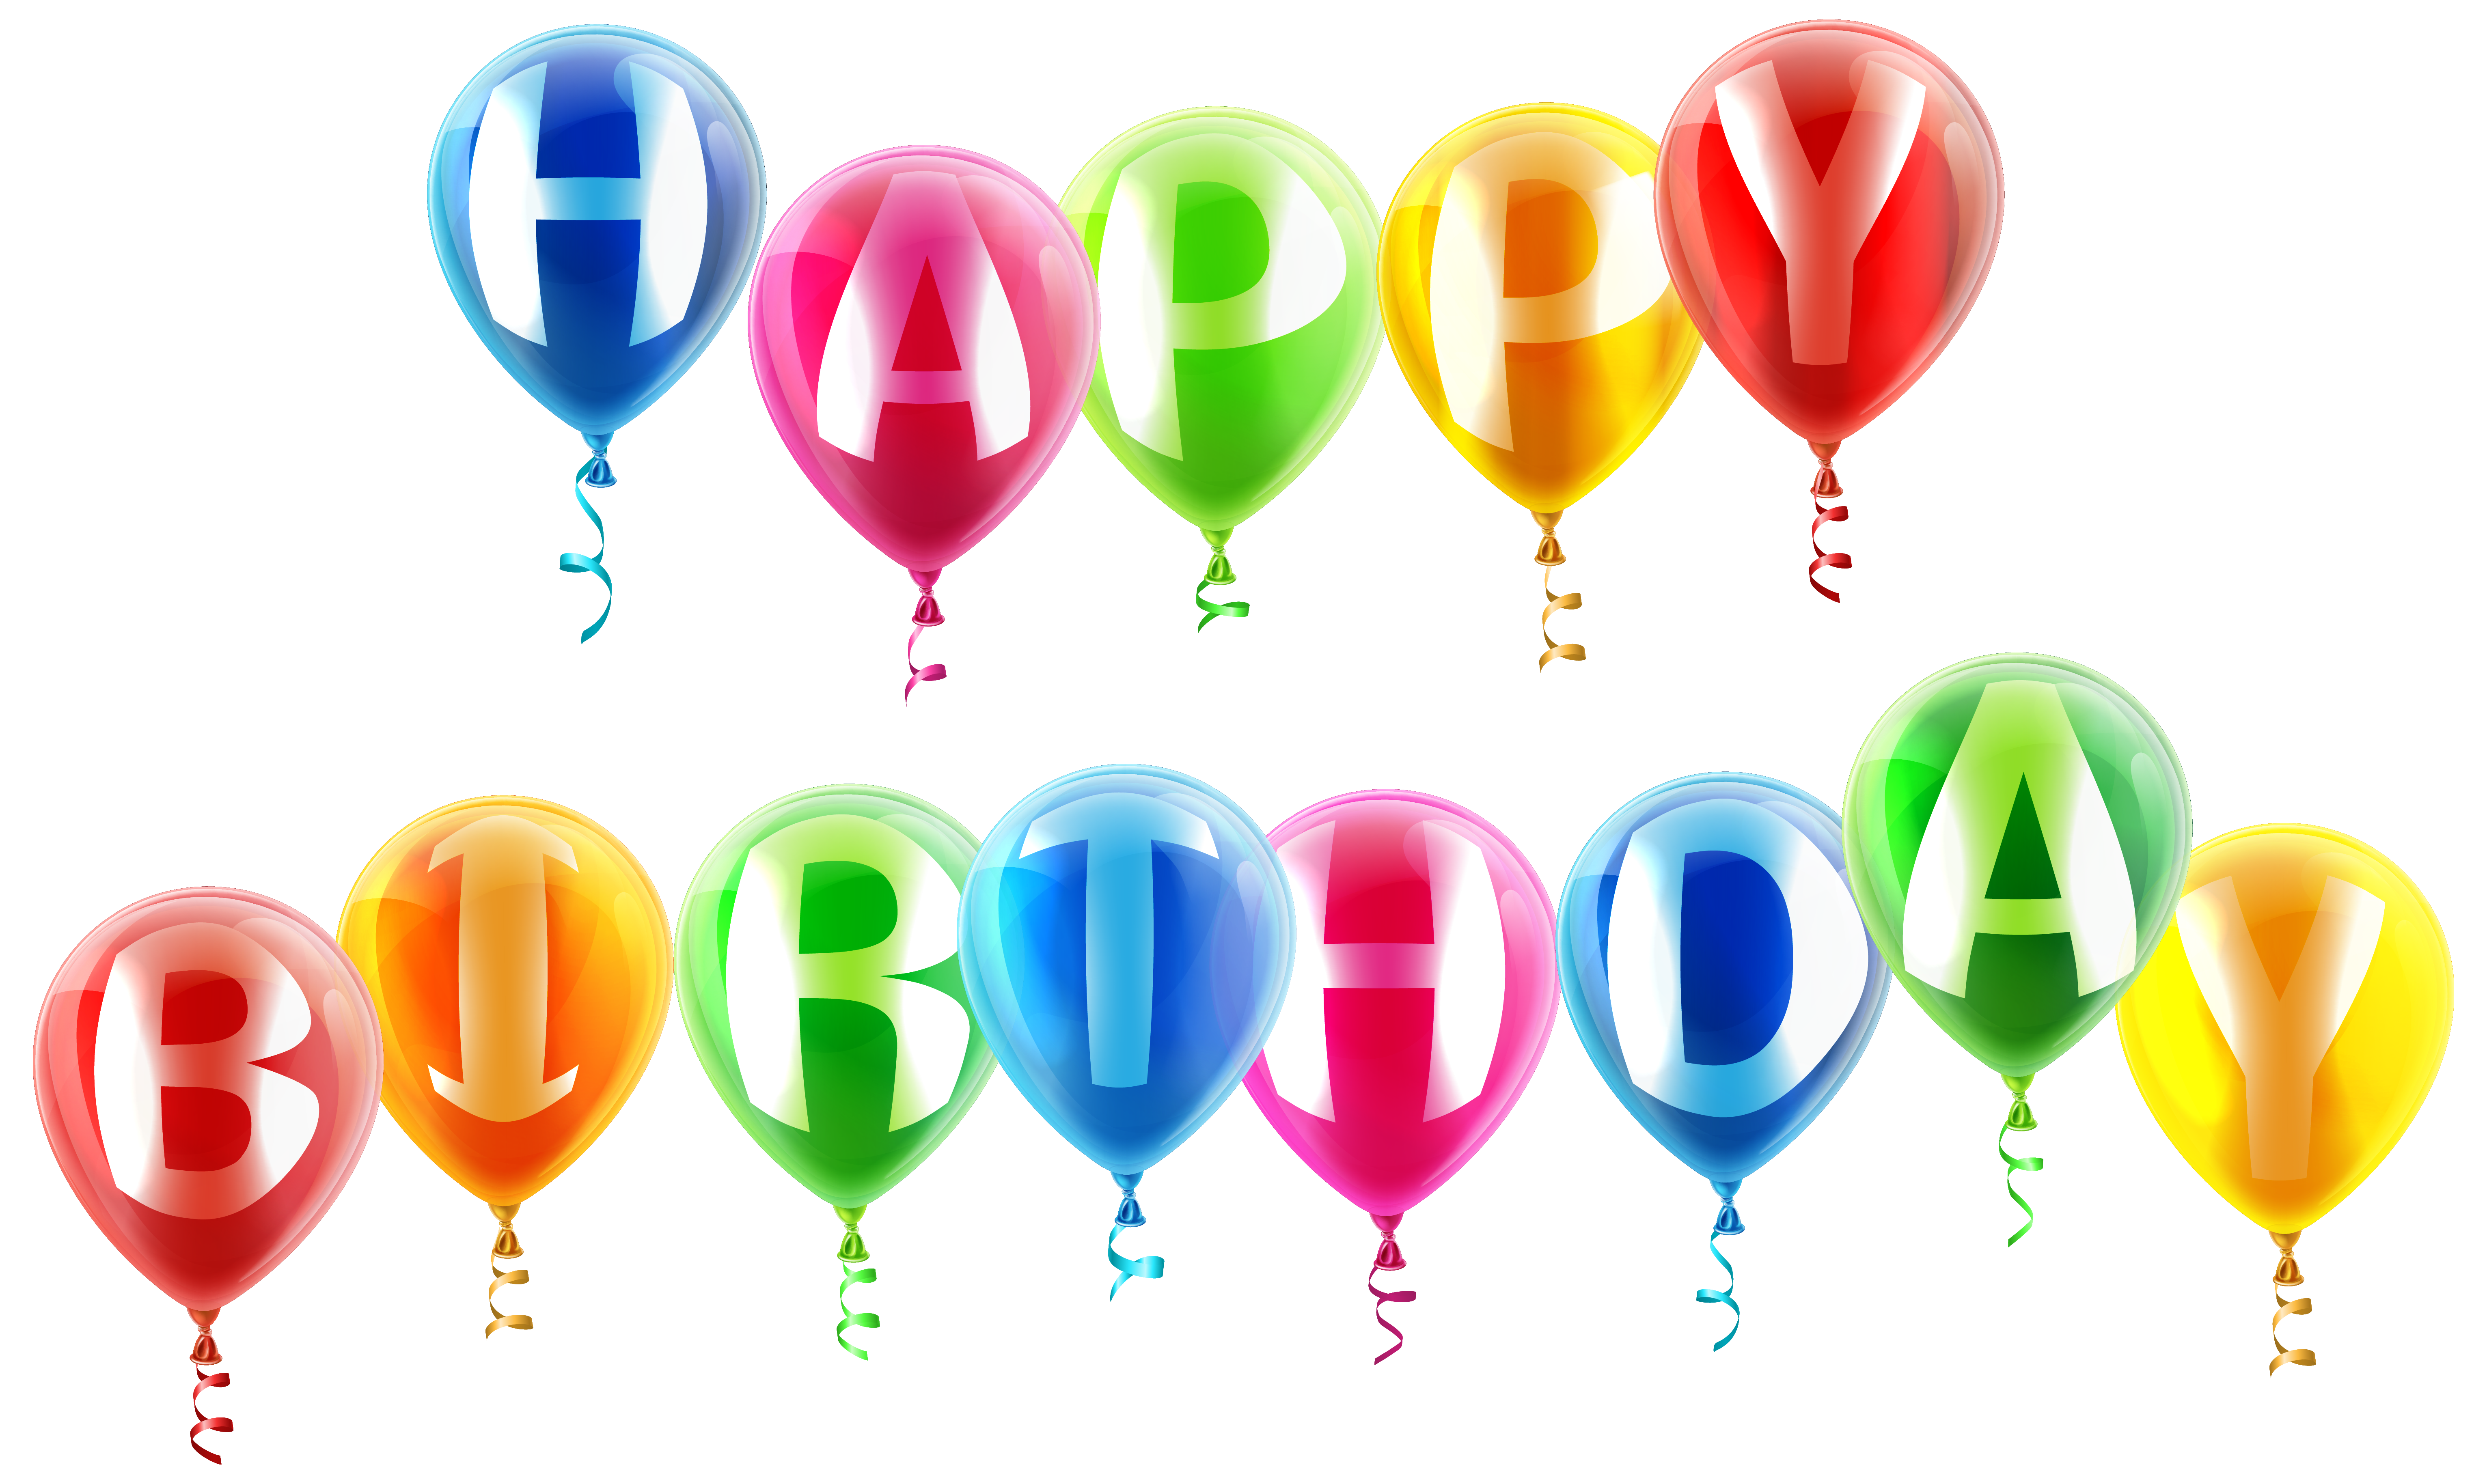 Happy Birthday Balloons Png - View full size ?